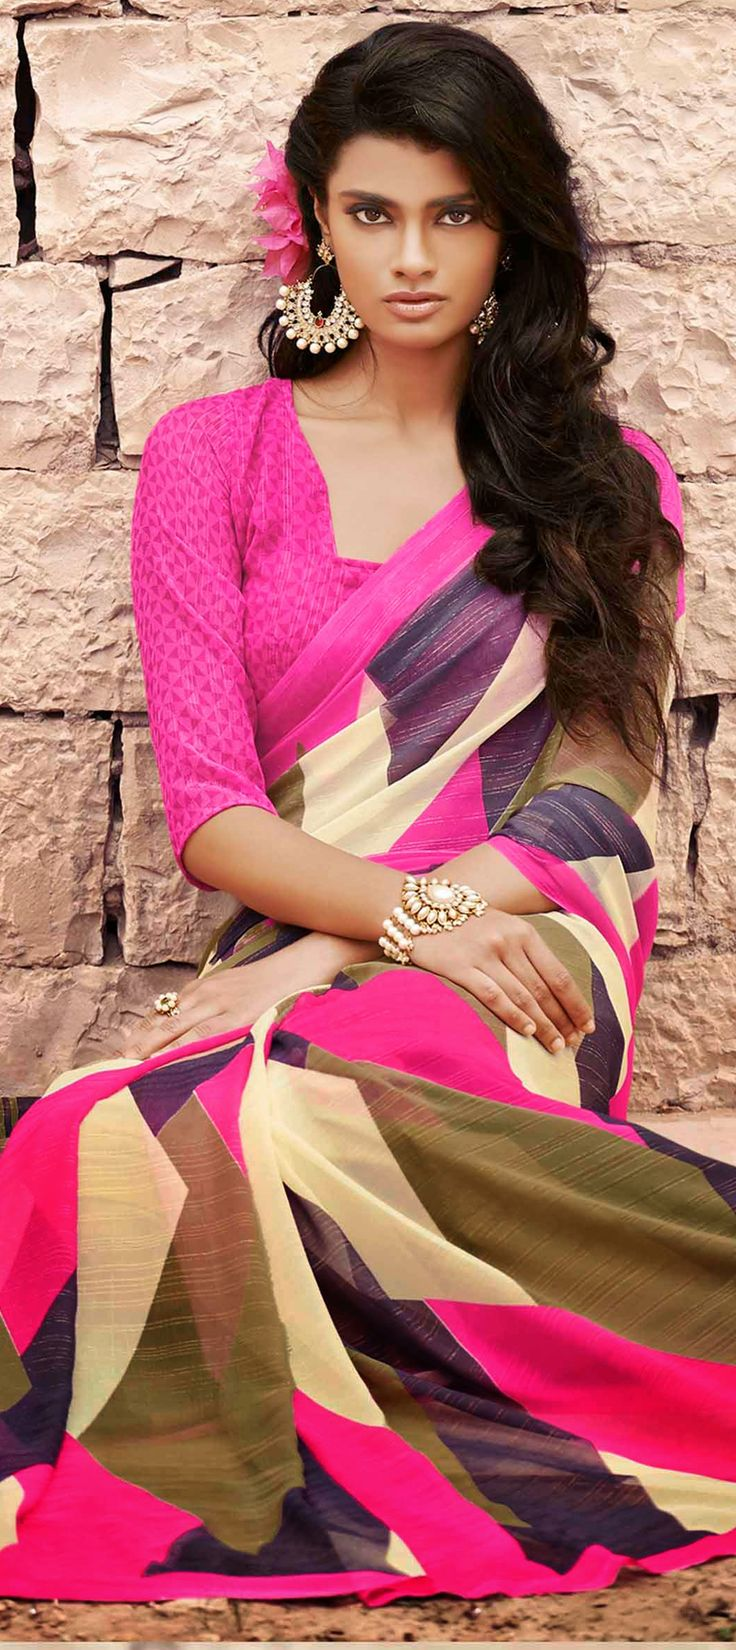 153714: PRINTS TO WEAR IN 2015 - this season, wear the most exotic prints in parties. #saree #Partywear #sale #OnlineShopping #IndianFashion #CocktailPartyLook